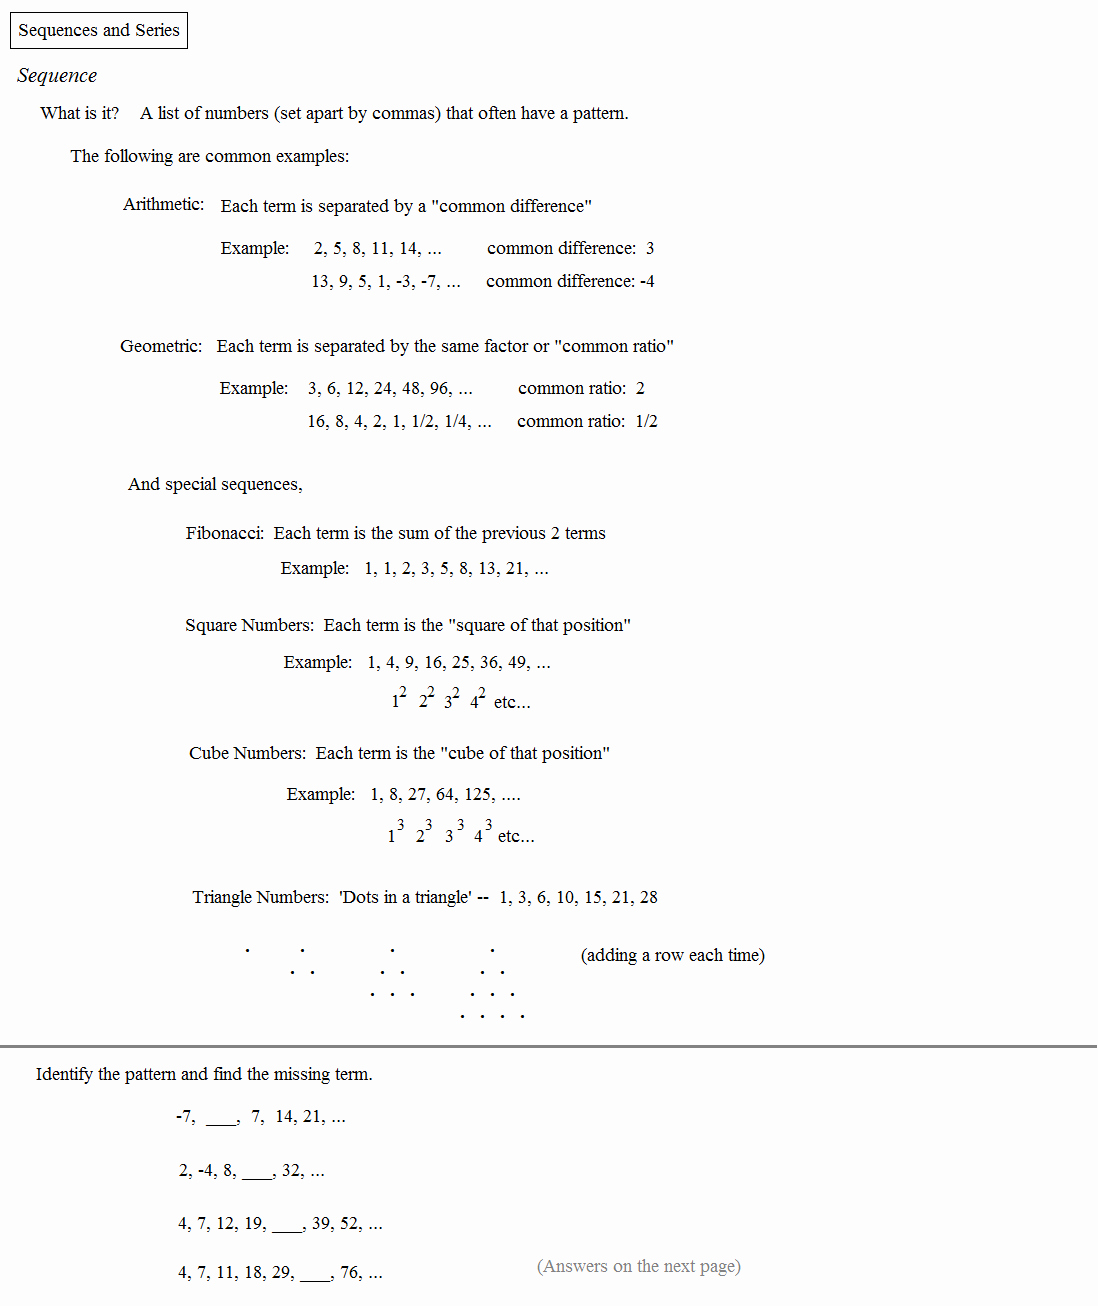 Geometric Sequence Practice Worksheet Unique Math Plane Sequences and Series I